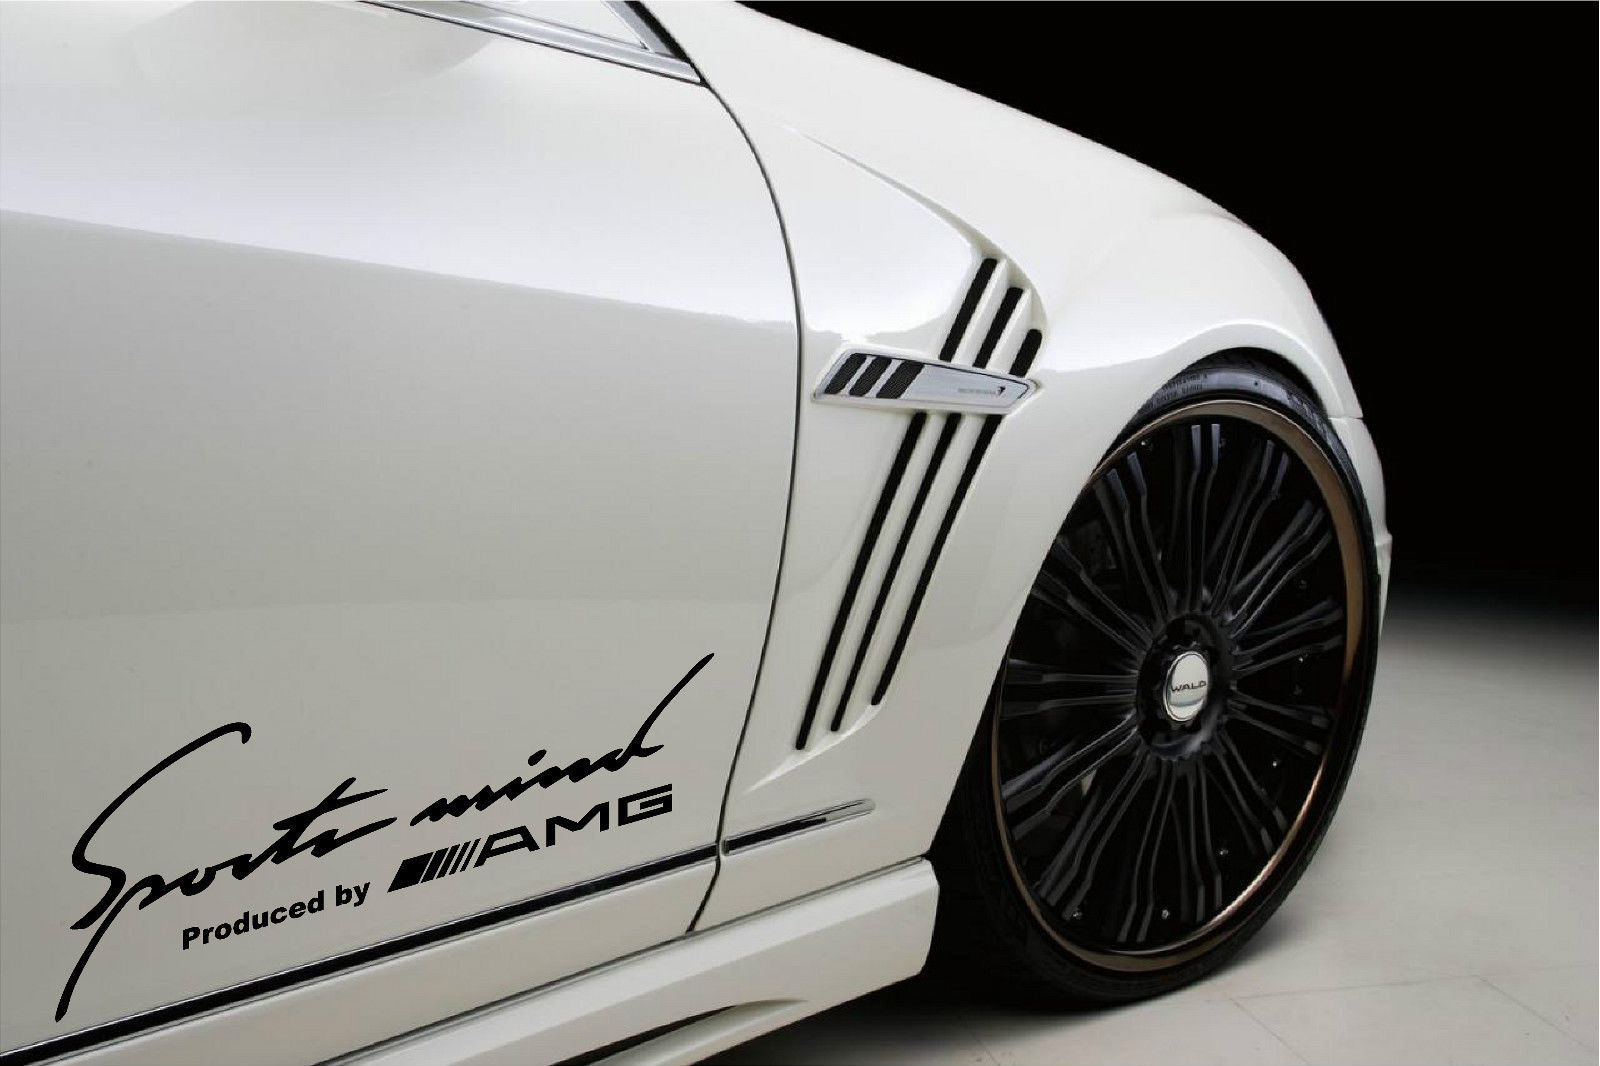 2 sports mind produced by amg mercedes benz e63 decal sticker for Mercedes benz decals